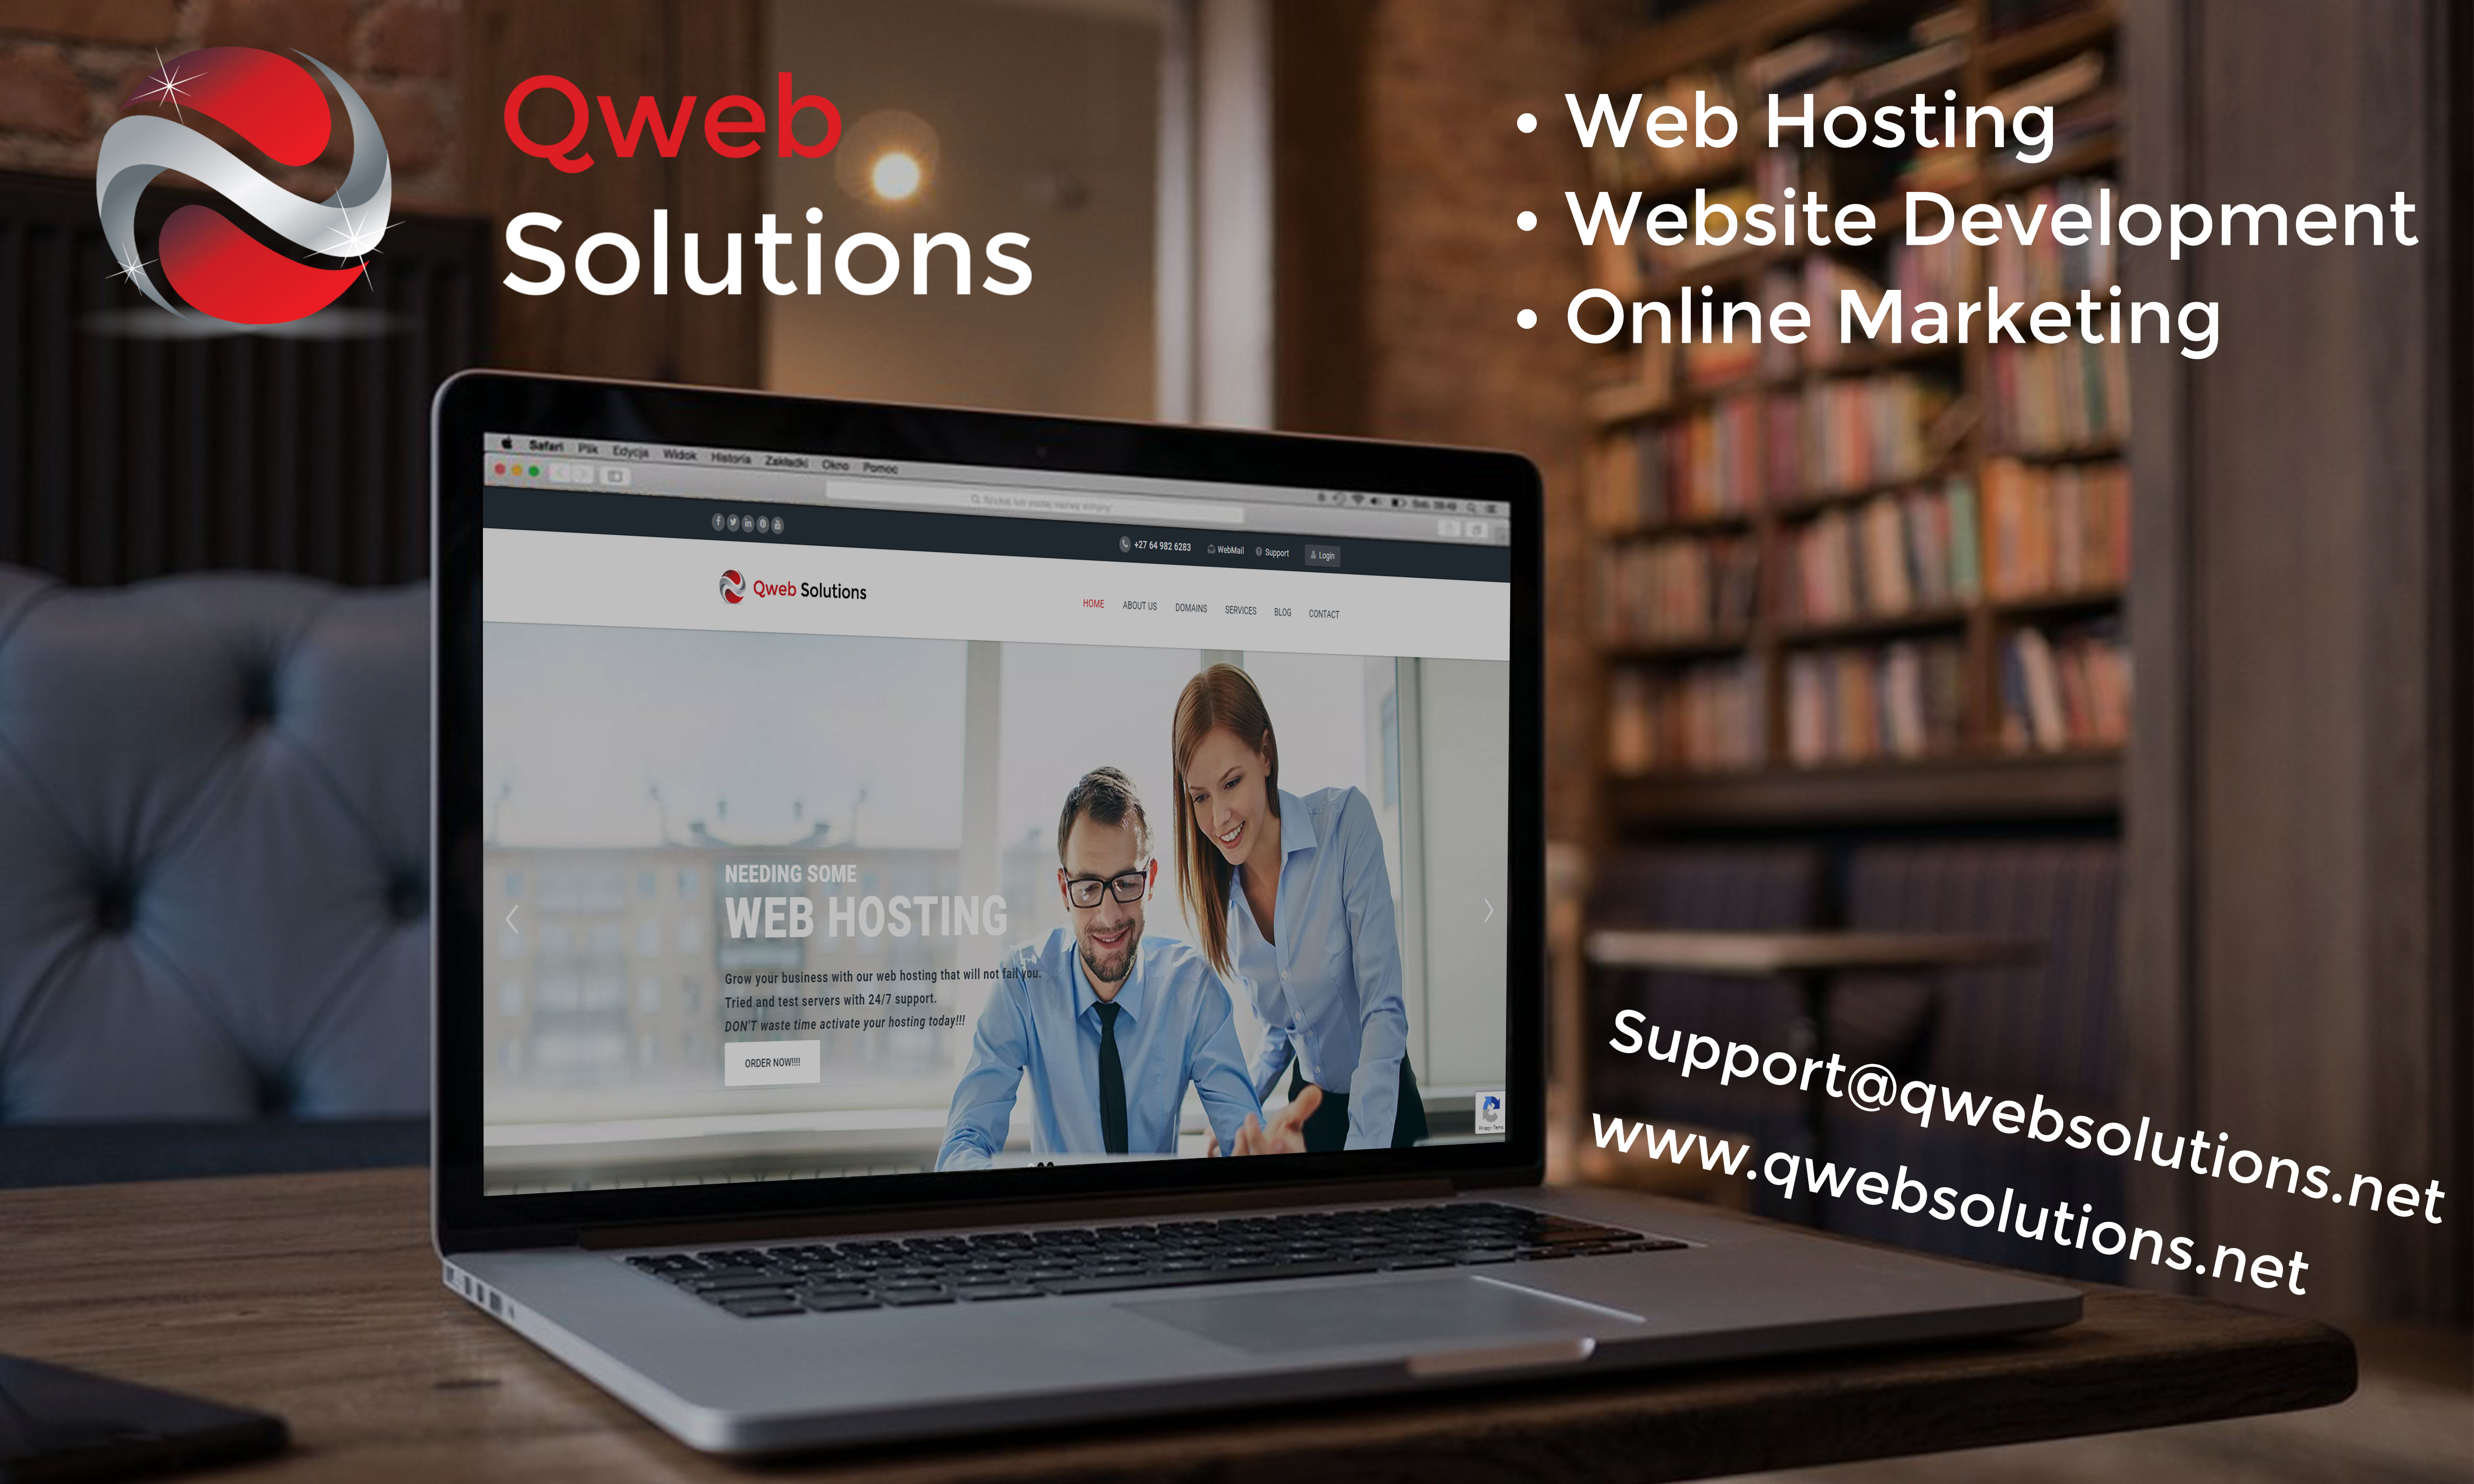 HostFaddy, Web Development, Web Design, Web Hosting, Professional Hosting, Professional Website, Domain Names, Top Level Domain, Email Hosting, Advanced Hosting, Daily Back Up, Optimized, Website Builder, Online Store, E-Commerce, SEO, Online Marketing, Google My Business, GMB, Google Adwords, Spam Filter, WordPress, Joomla, Drupal, WHMCS, PrestaShop, Opencart, Magneto, Mambo, Register, Shared Hosting, Business Hosting, Web Hosting, VPS Hosting, VPS, Virtual Private Machine, Cloud Hosting, Dedicated Servers, Email Assistance, Email Setup, Responsive, Customizable, Coding, Online Presence, Accessible, One-click Installer, Easy To Use, Virus Protection, Premium Support, 24/7 Monitoring, cPanel Control, Business Plan, Business Pro, Business Ultimate, Scalability, WordPress Hosting, Configurable, WordPress Manager, Limitless Functionality, Free Plugins, Linux, Root Level Access, Unmetered Bandwidth, Reliability, Lightning-Fast, Cloud Server, High-Performance, SSD, Dedicated Server, Isolation, Fast Response Time, Easy Domain Setup, Unlimited Sub Domains, Advanced DNS Controls, Domain Locking, Security, Web Security, Advanced Protection, Security Analysts, Malware Removal, Google Blacklist Monitoring, Protection, DDos Mitigation, SSL, Social Media, Social Media Marketing, Media Platforms, Advertisements, Website Traffic, Facebook, Twitter, Instagram, LinkdIn, Pinterest, YouTube, Google Ranking, Strategy, Search Engine Results, Brand Awareness, Tailored Content, Curated Content, Lead Generation, Original Content, Articles, Web Ranking, Bronze Package, Silver Package, Gold Package, Email Marketing, Email Design, Monthly Analytics, Programming, Website Functionality, Mobile Traffic, Mobile Development, Low Maintenance, Lower Bounce Rates, Improved Online Experience, User Friendly, 100% Responsiveness, Website Package Special, Client Base, Search Engine Optimization, Google Listing, Google Map Results, Earn Trust, Star Ratings, Increase Engagement, Advertising Platform, Qweb,